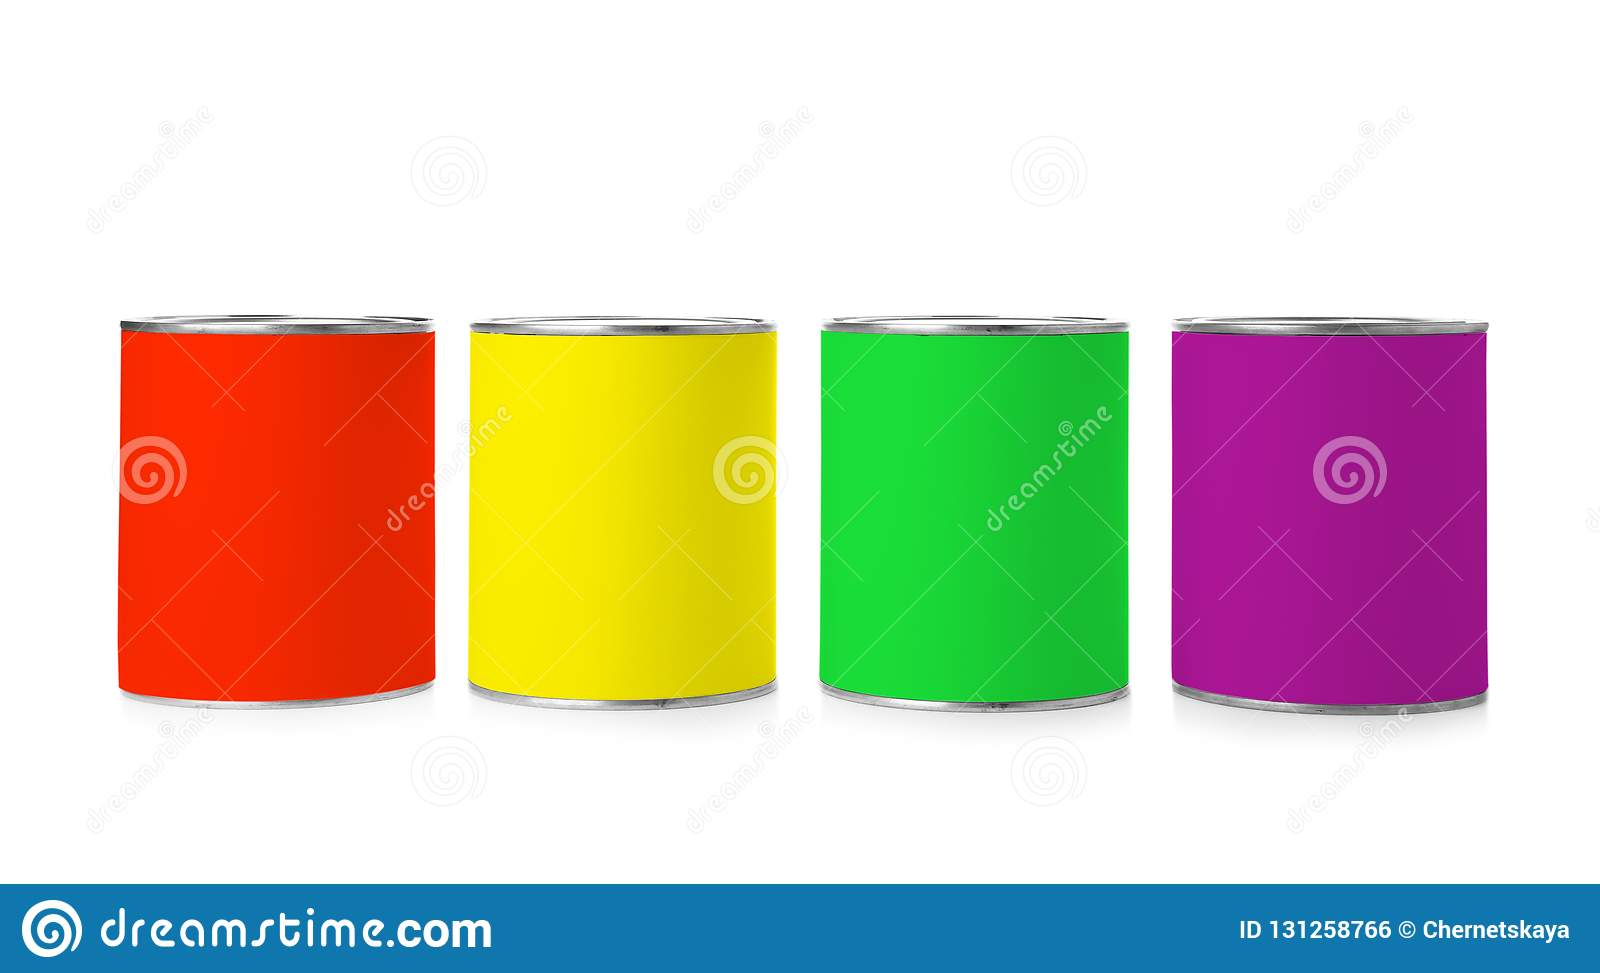 Set of different paint cans on white background